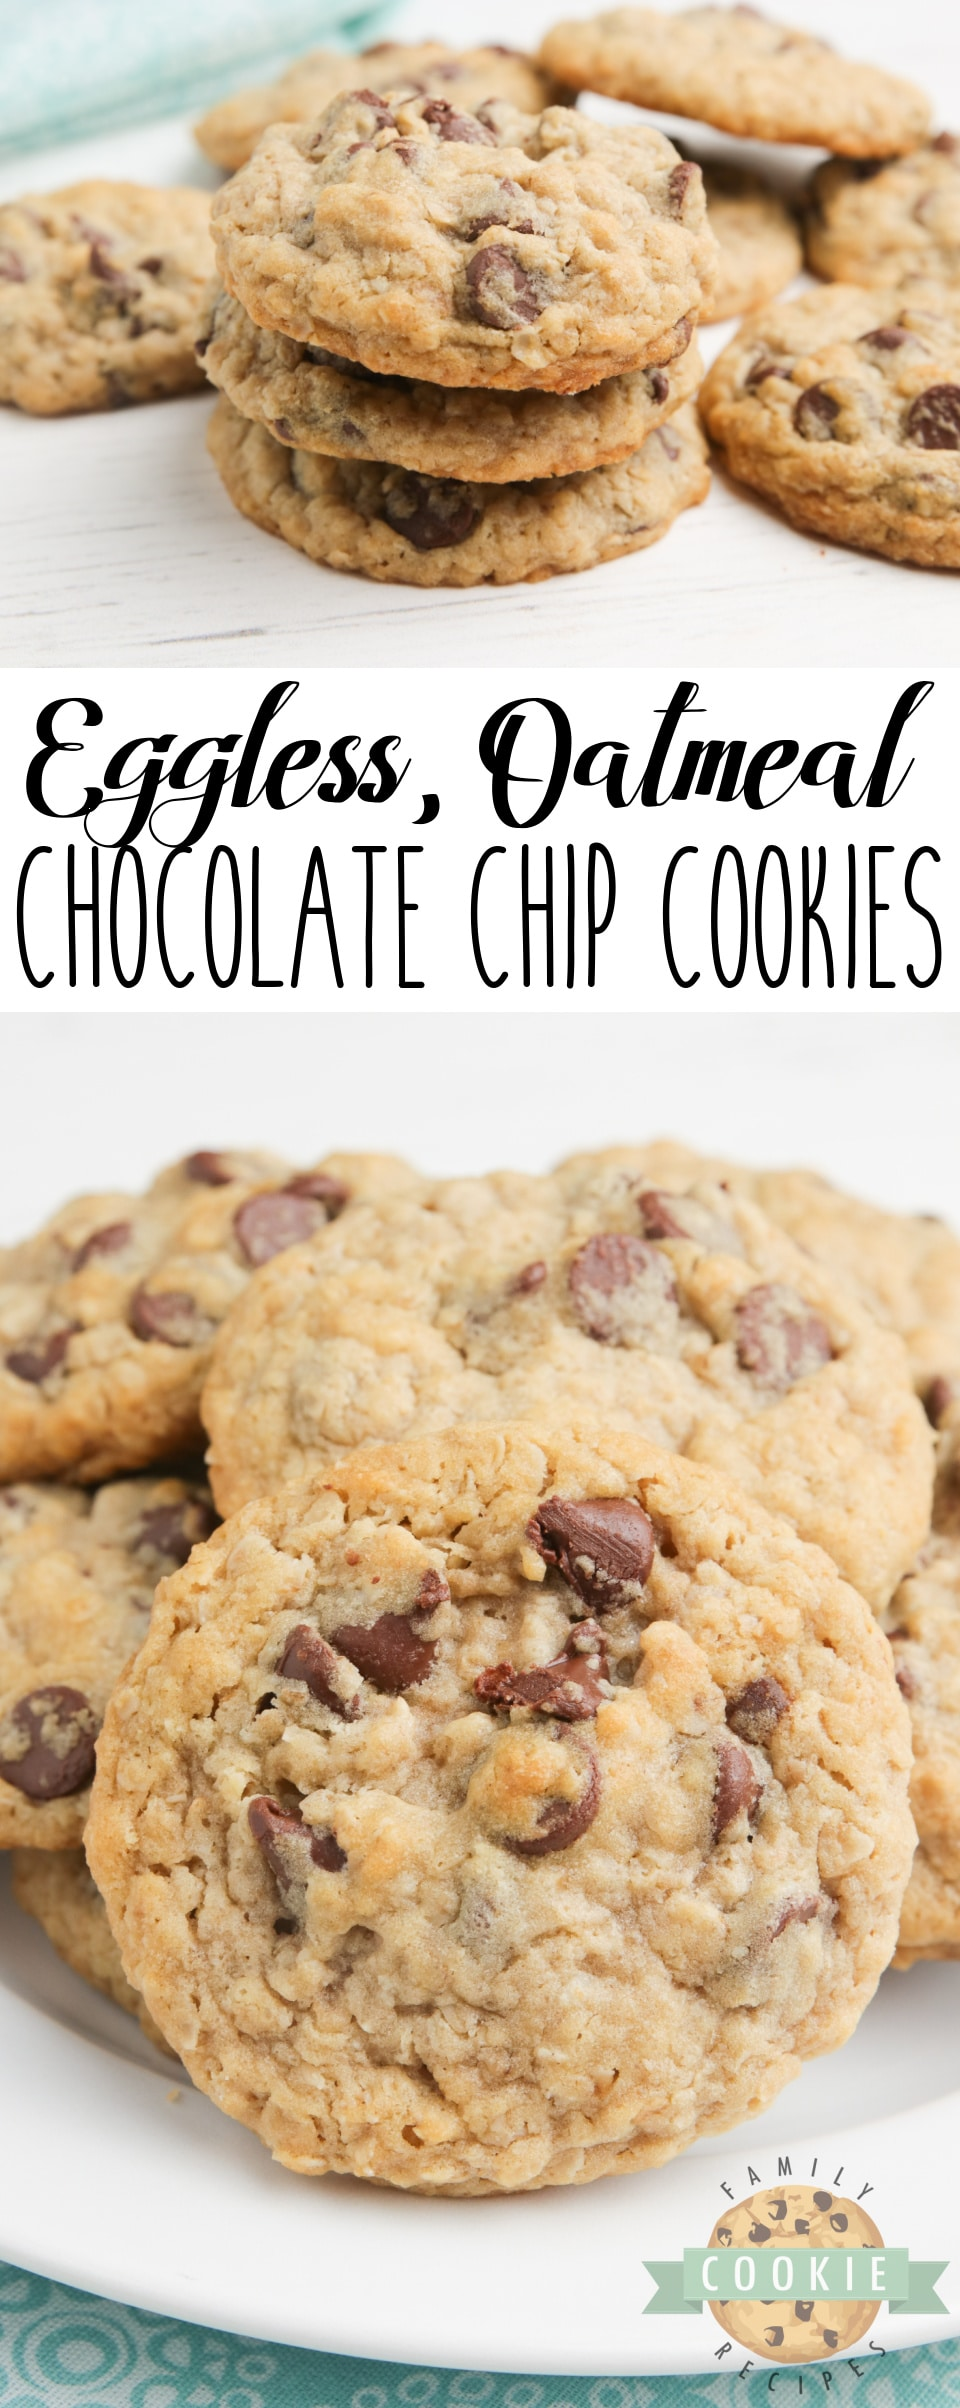 Eggless Oatmeal Chocolate Chip Cookies are soft, chewy and have the perfect consistency - you can't even tell there aren't any eggs in the recipe! Best eggless cookie recipe ever! via @familycookierecipes